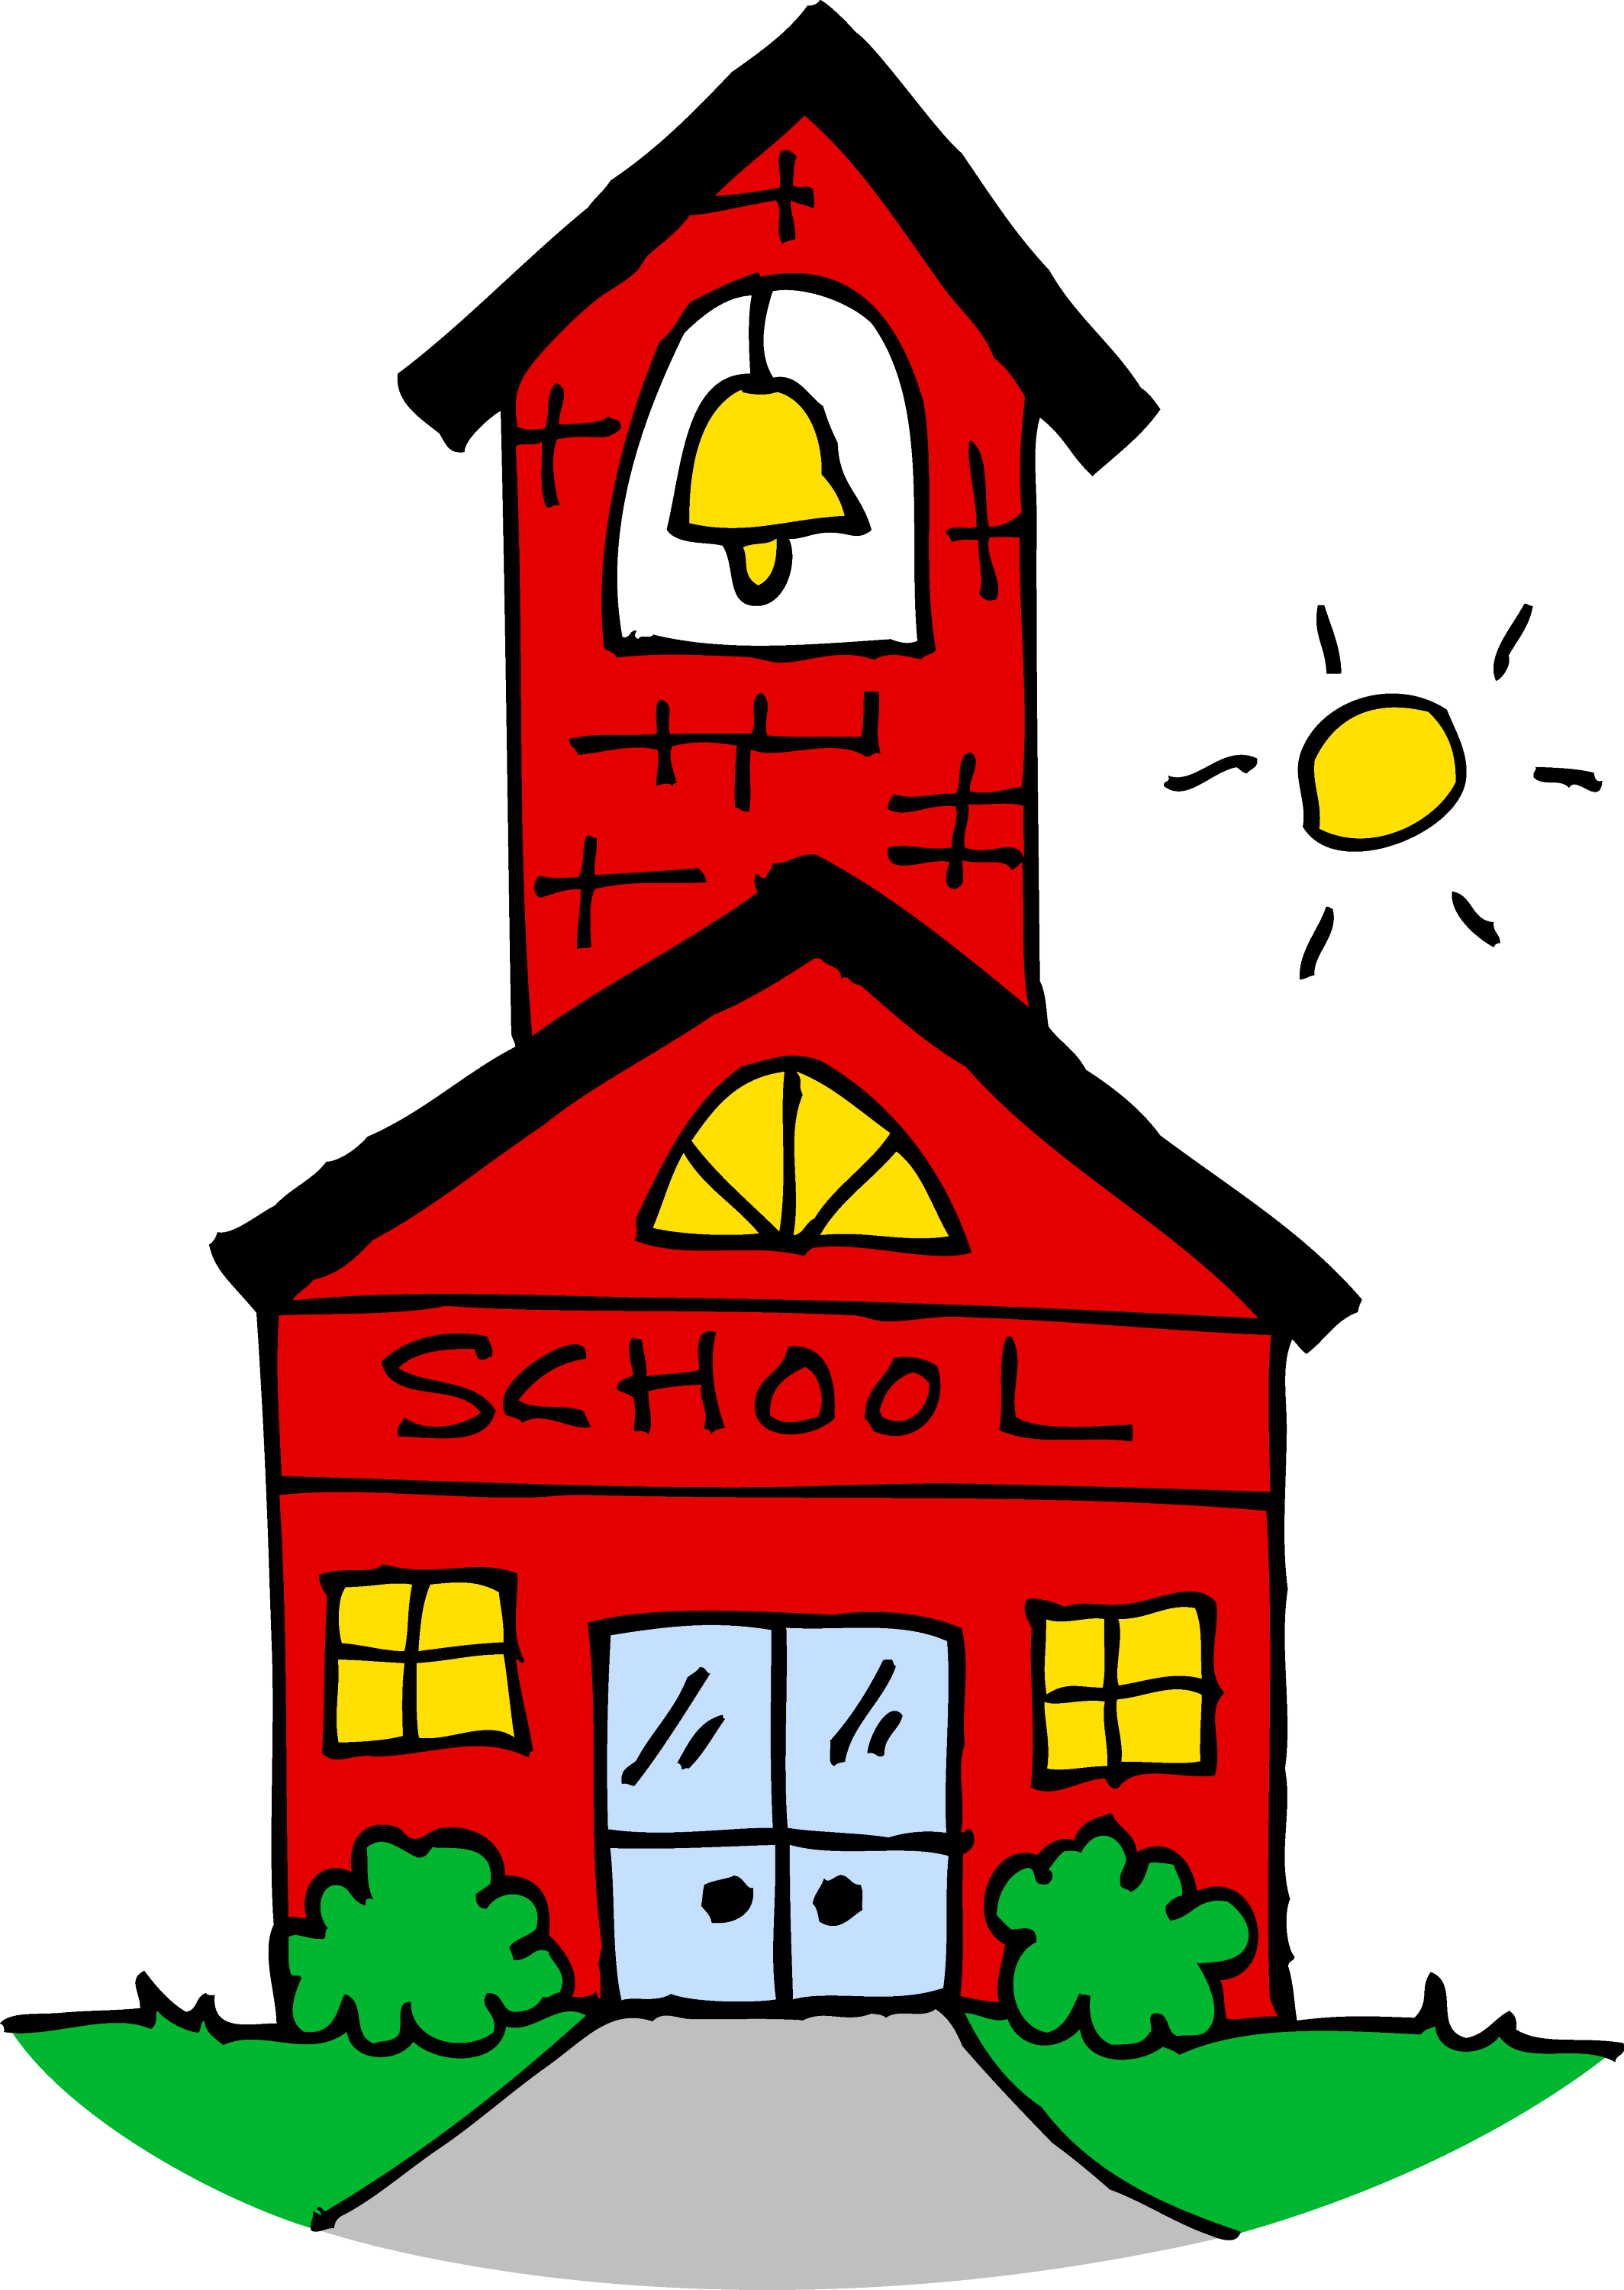 cute school house clipart free clip art rh sweetclipart com school clipart images black and white school clipart free download